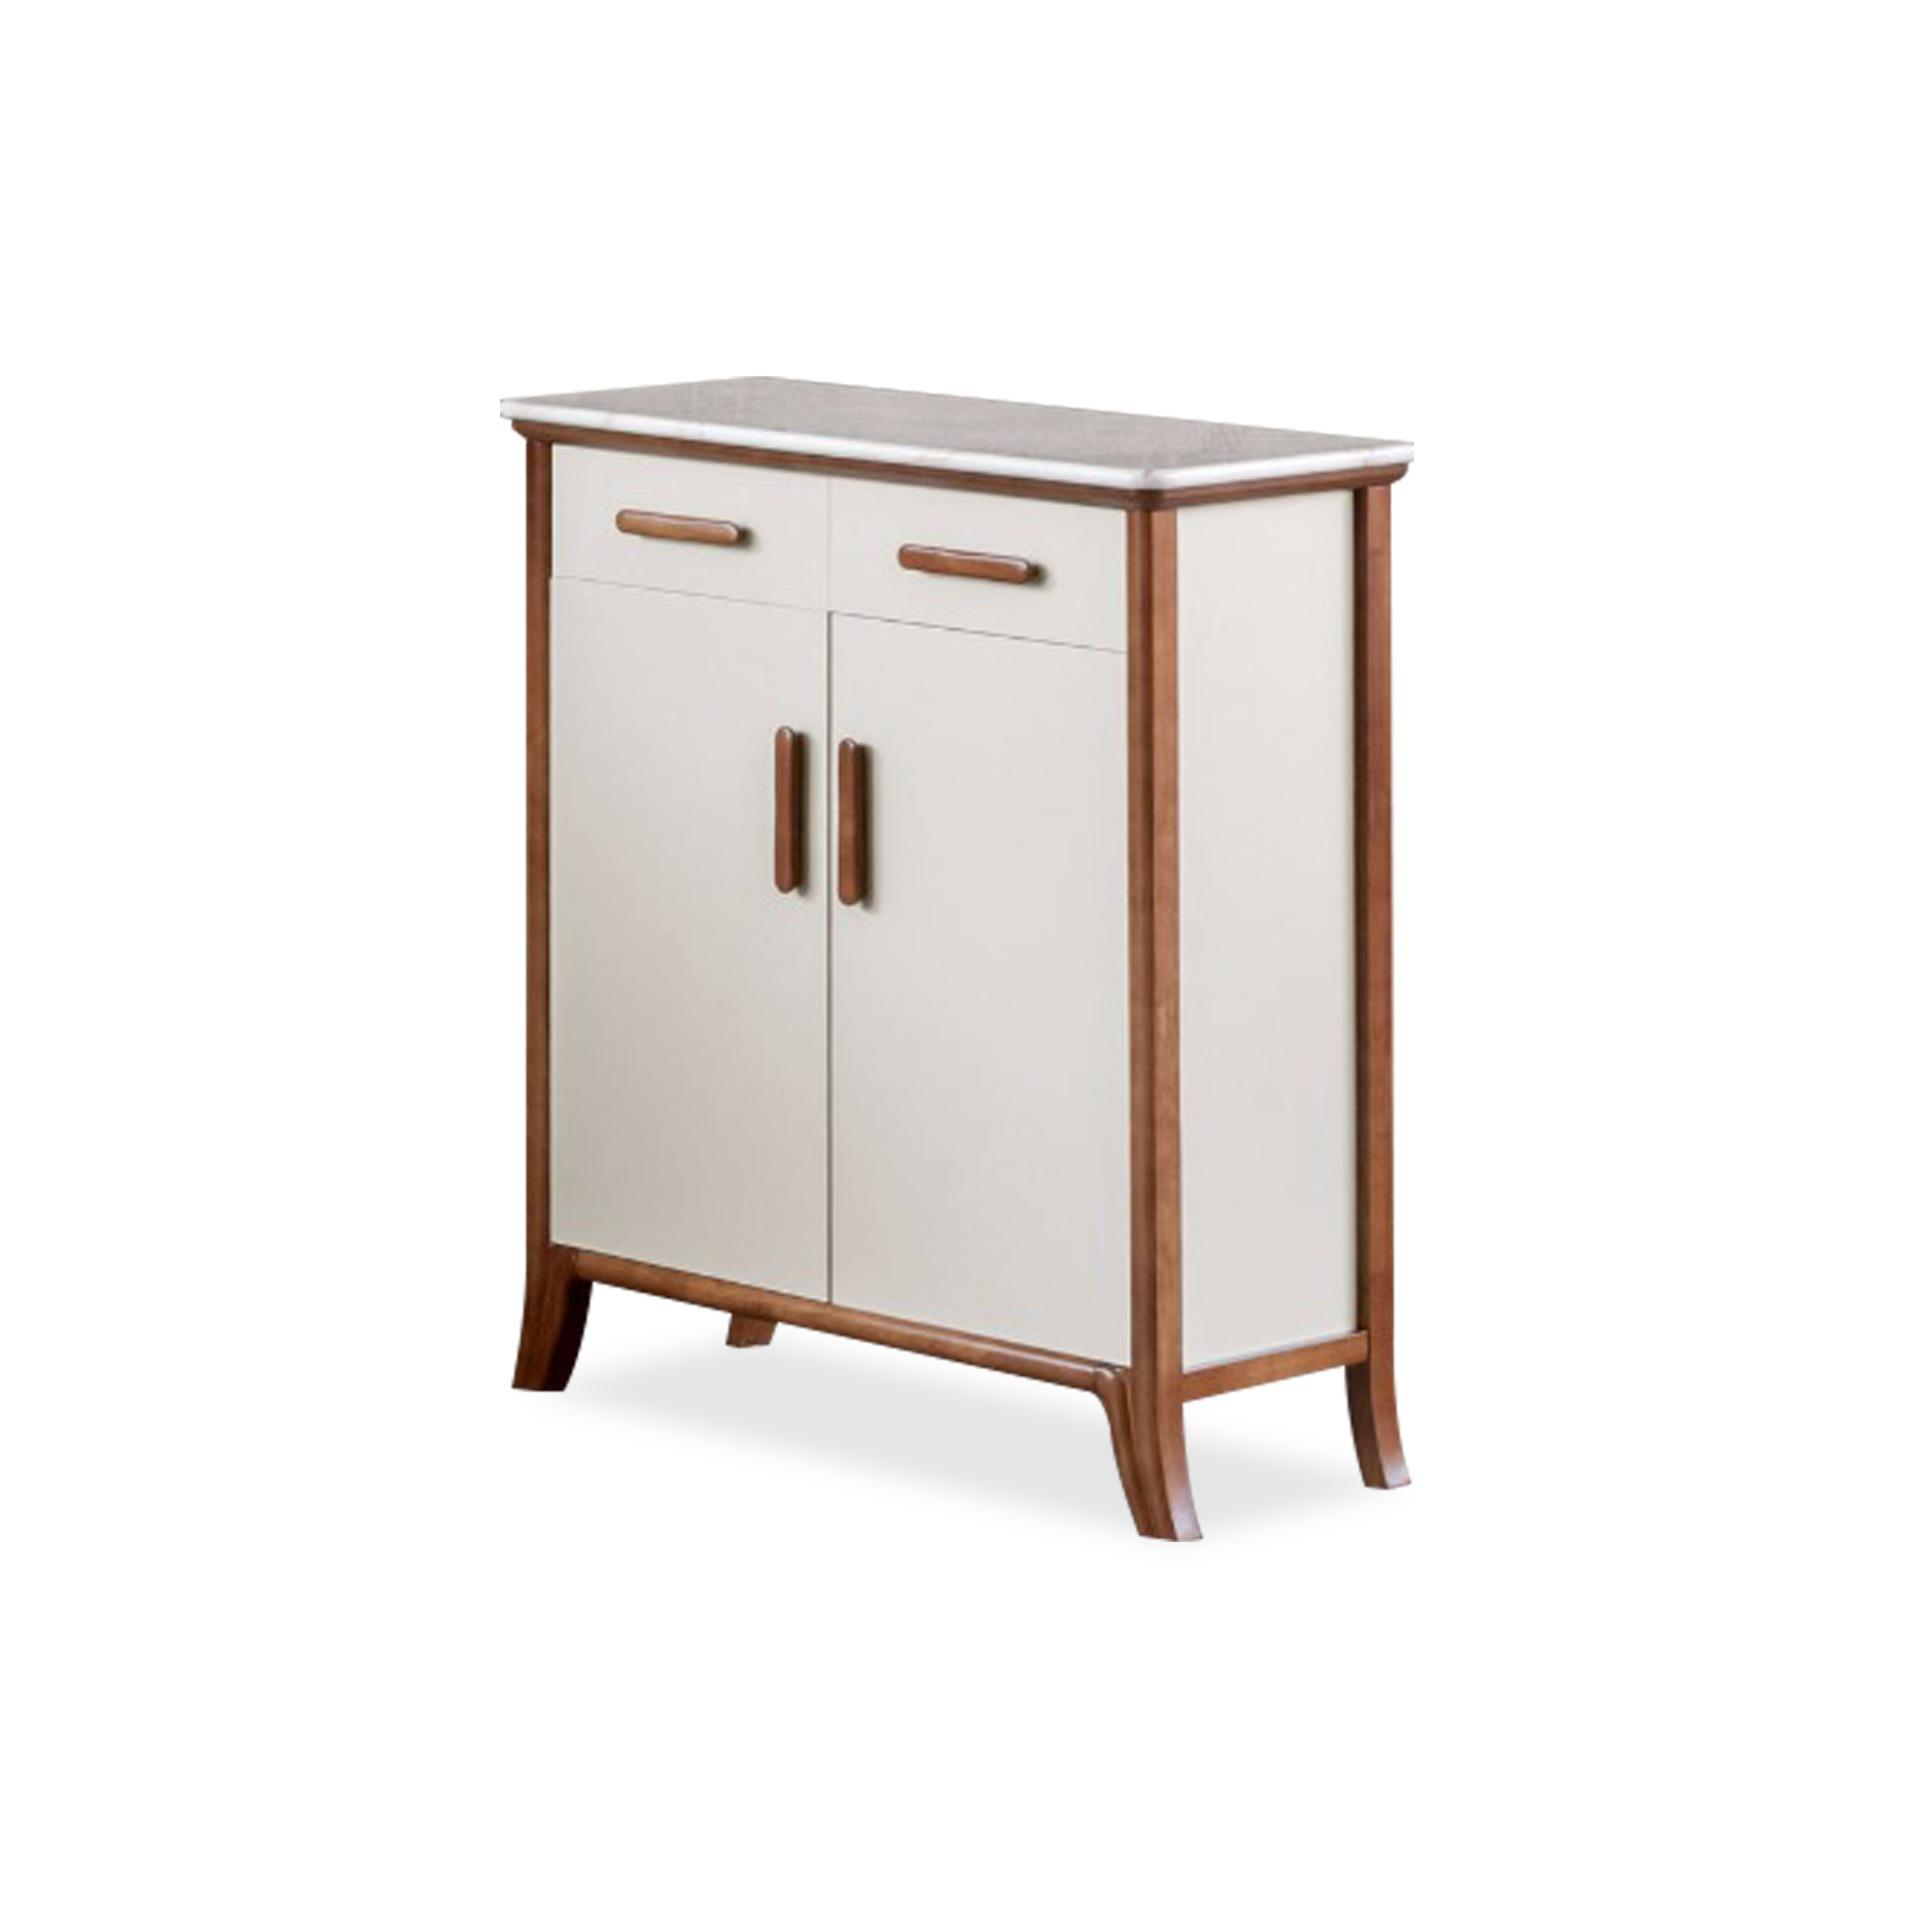 Aloin 2 Doors Shoe Cabinet (FREE DELIVERY)(FREE ASSEMBLY)